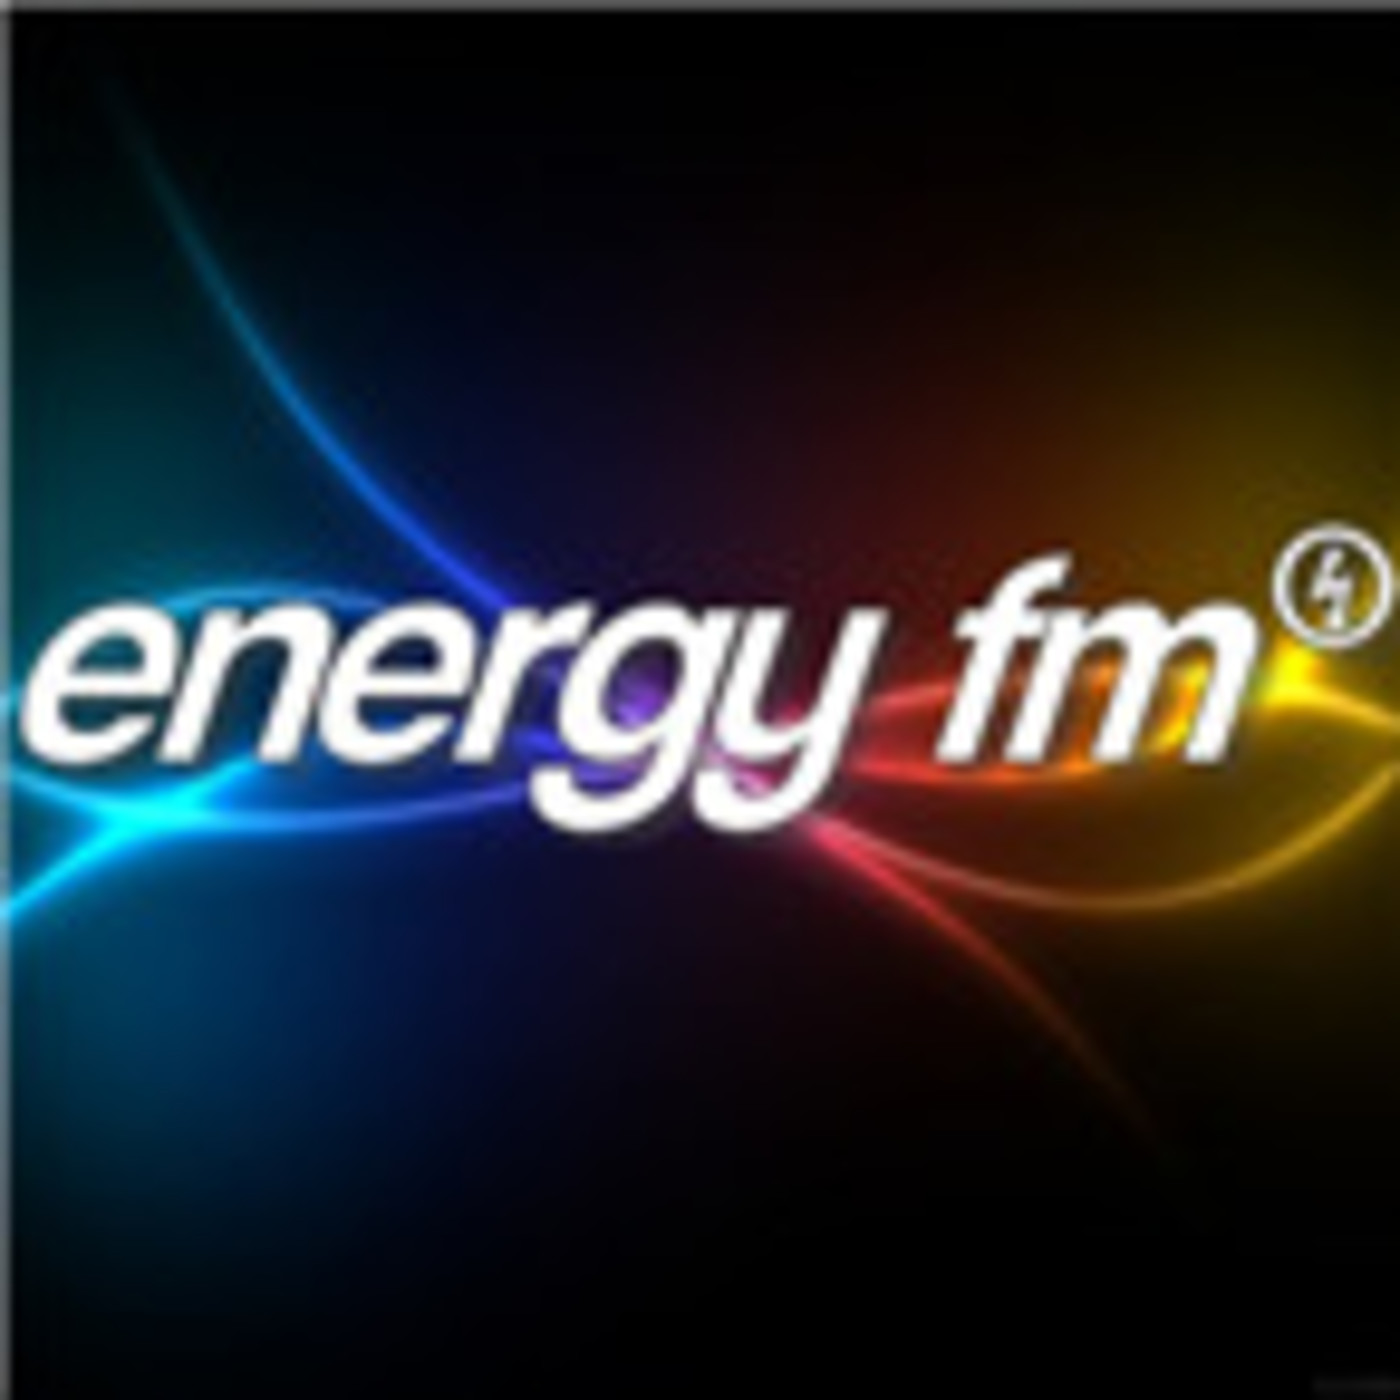 Energy FM - Channel 1 (Regular Energy FM